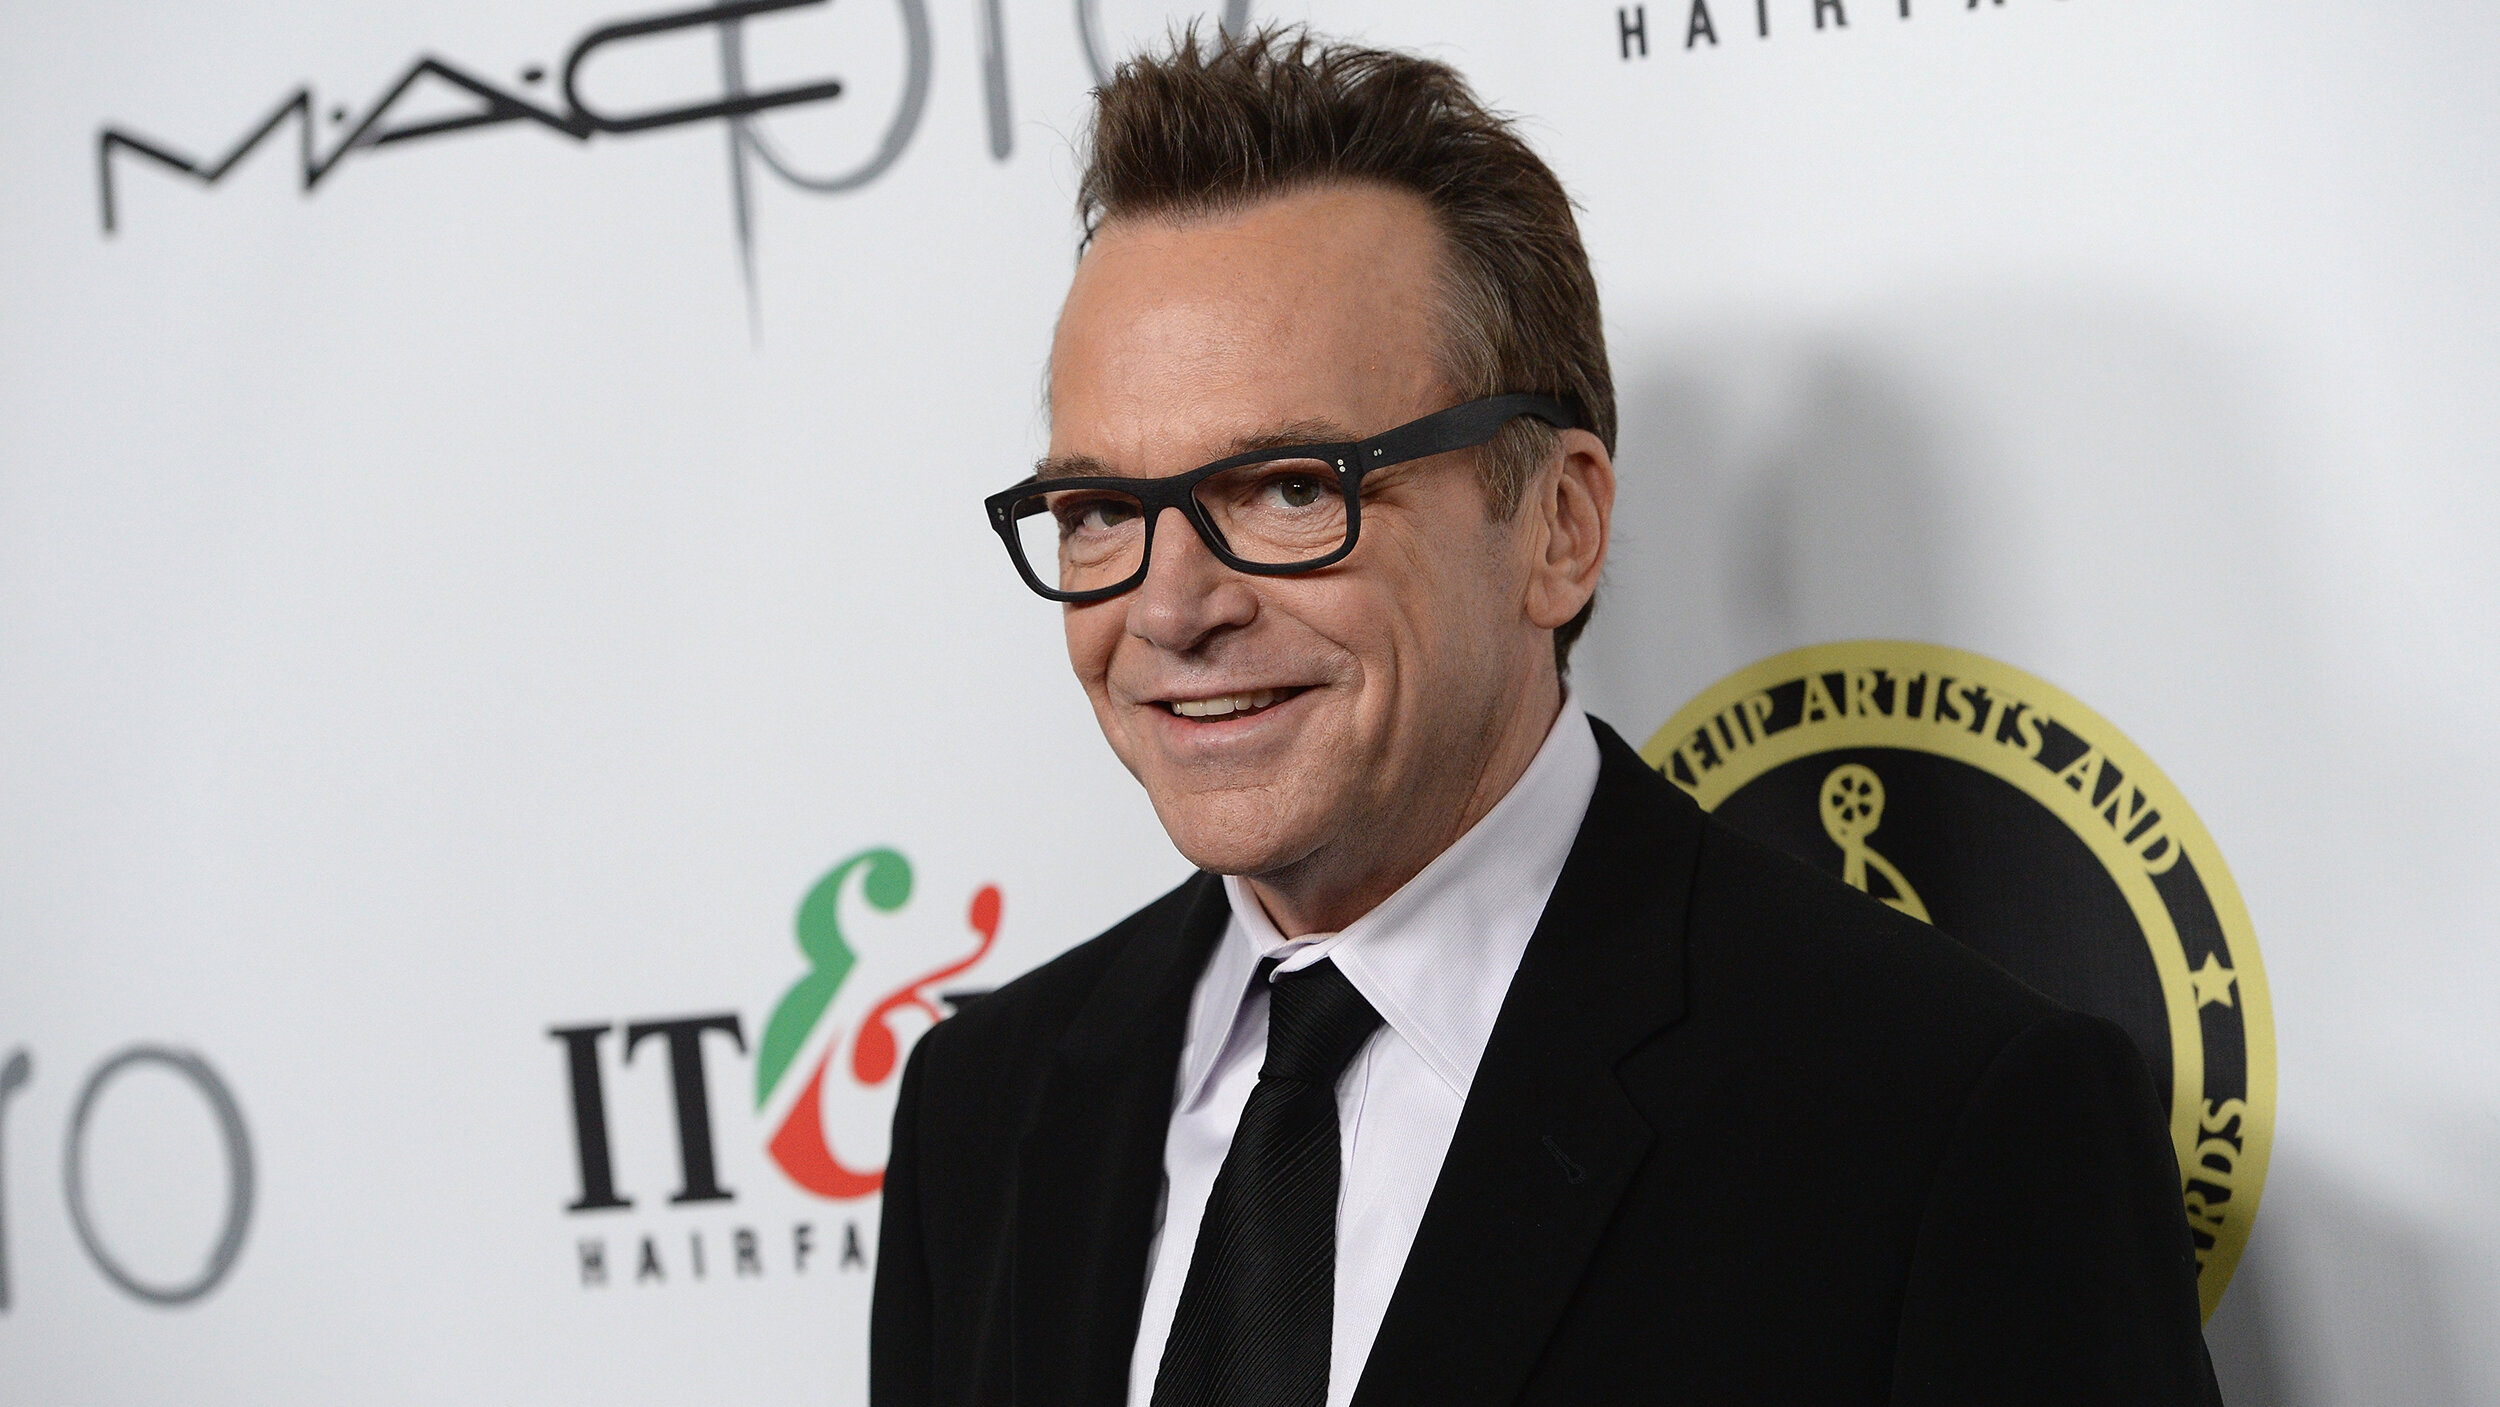 Tom Arnold (TV: Roseanne)